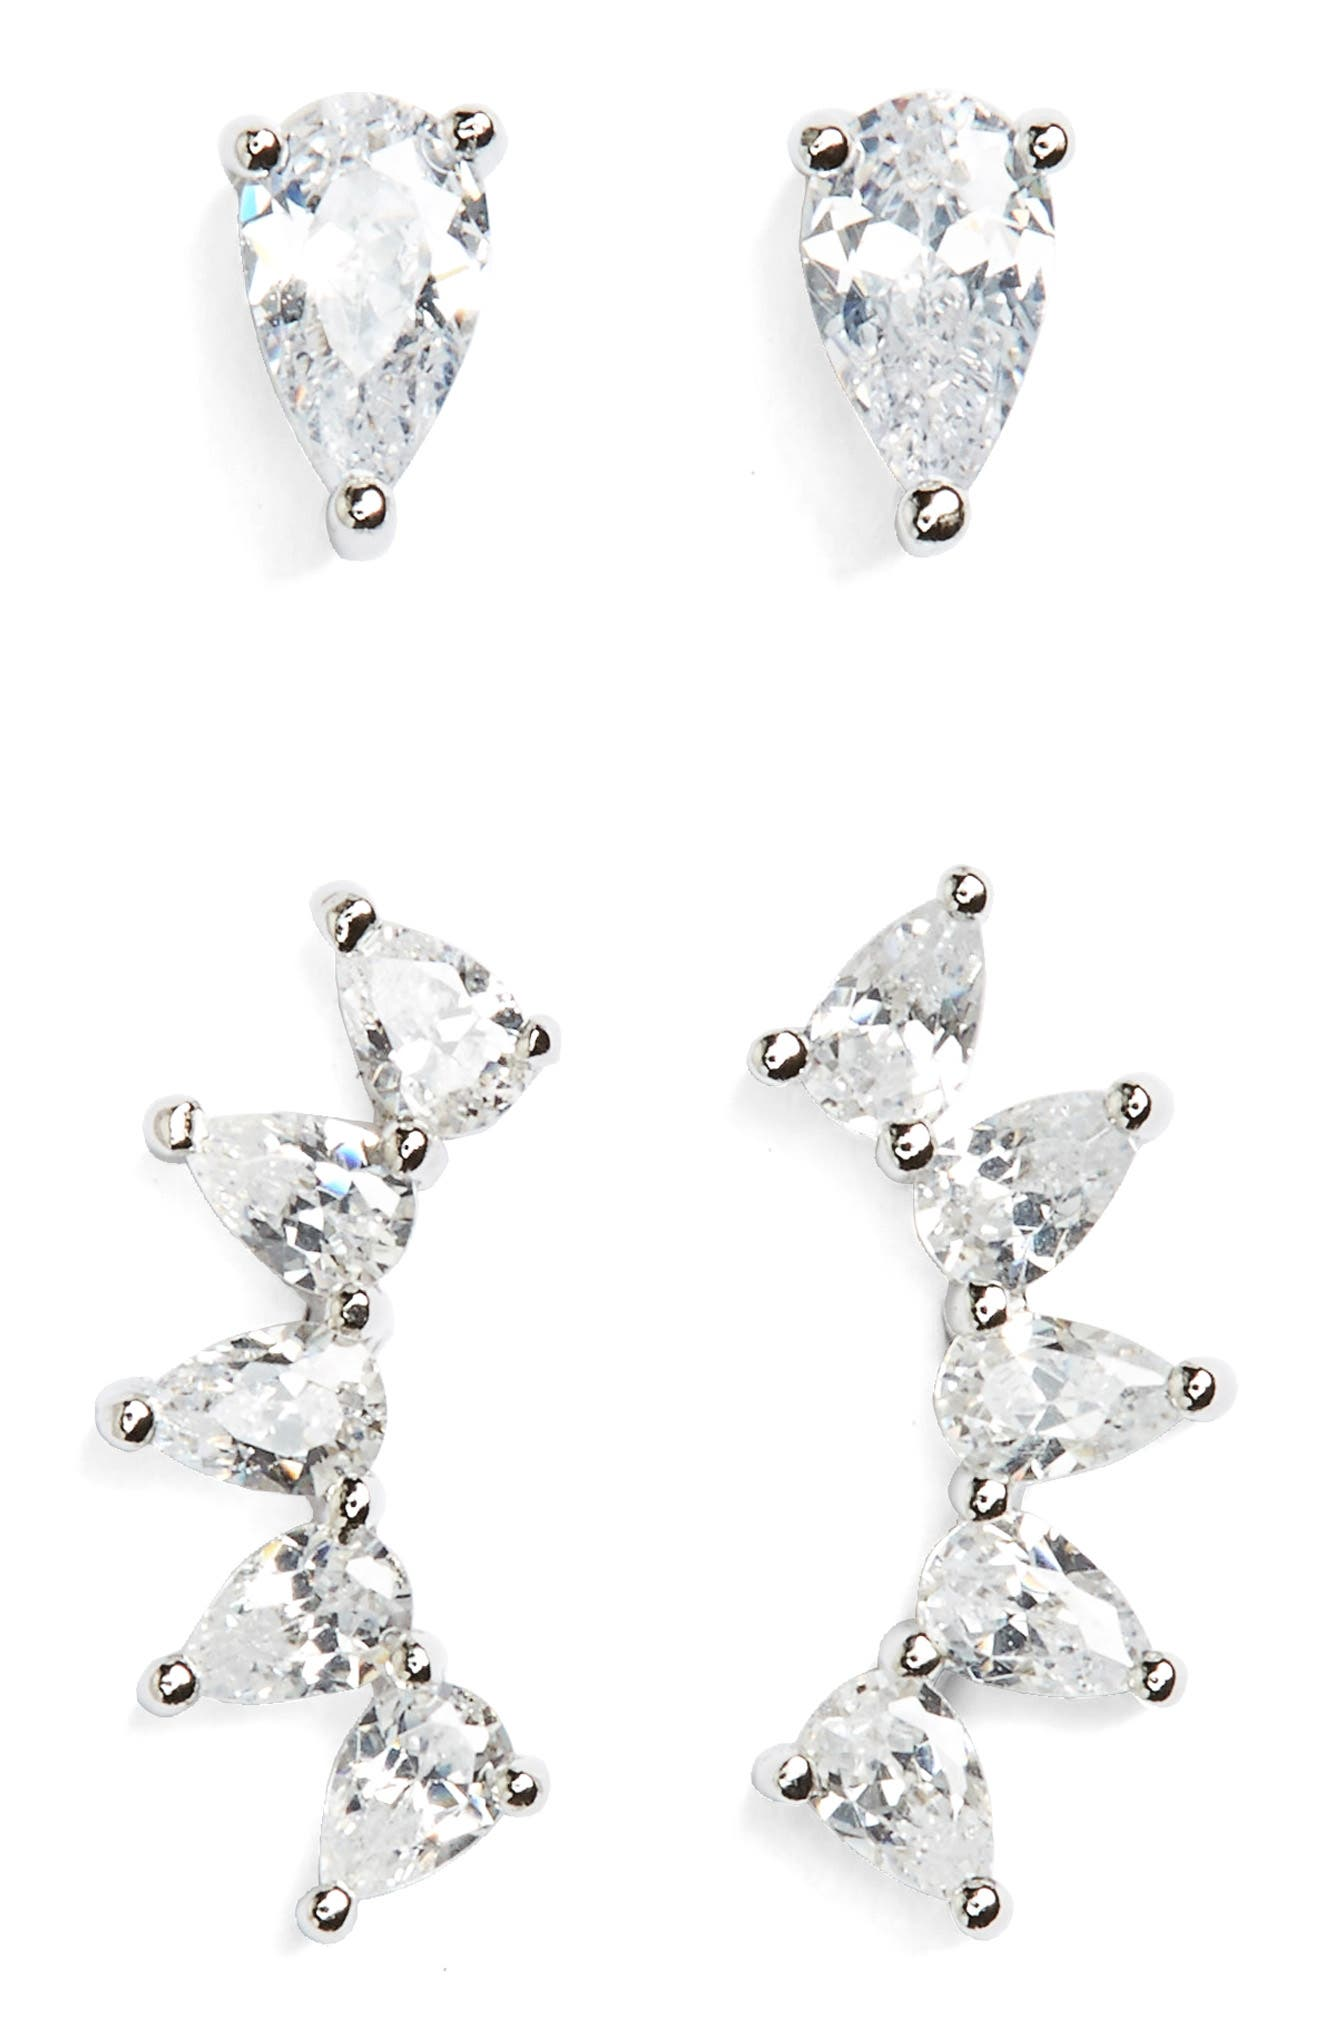 Set of 2 Pear Marquise Cubic Zirconia Earrings,                             Main thumbnail 1, color,                             Platinum